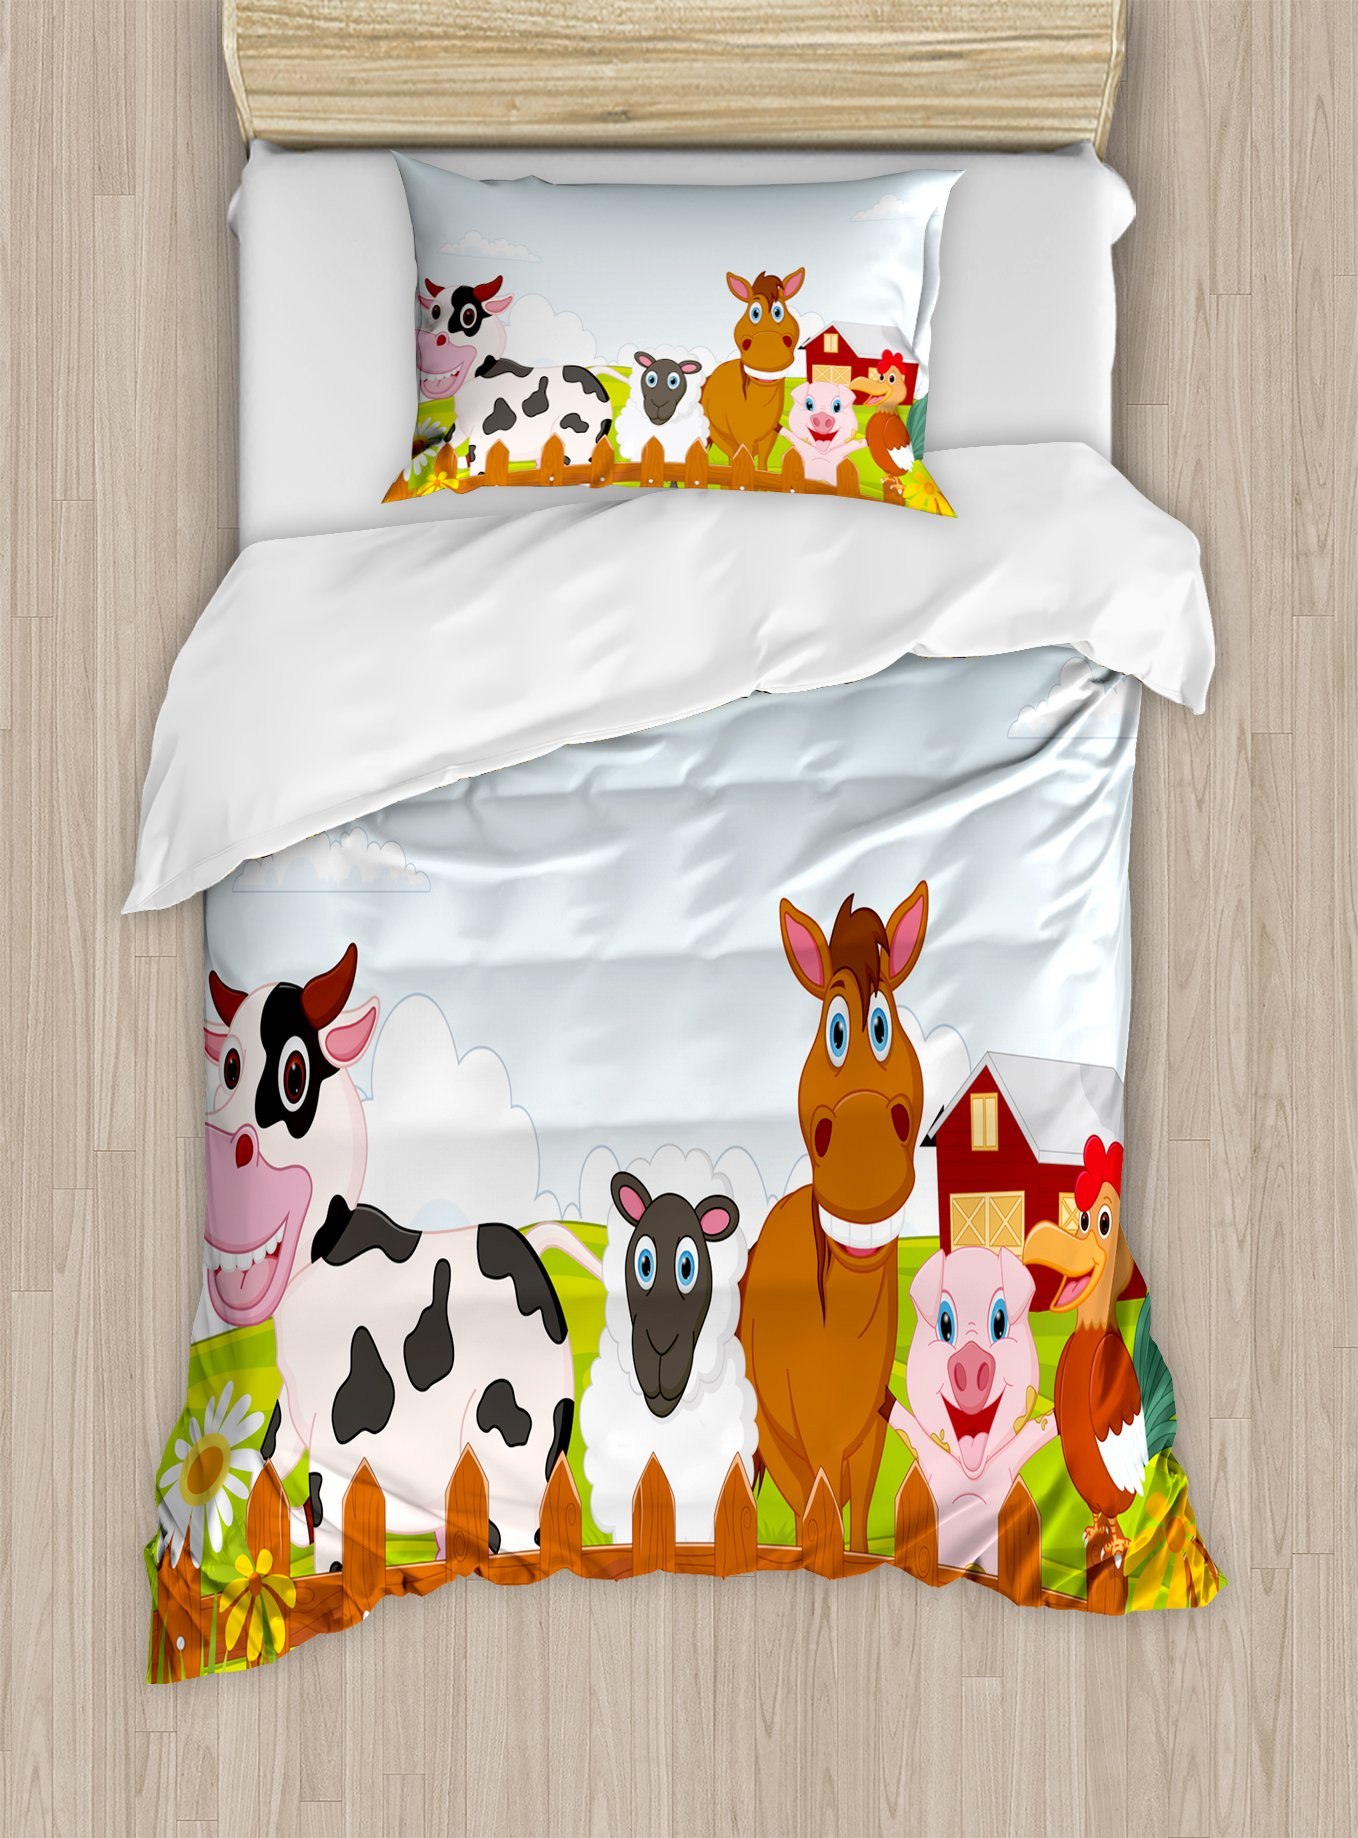 Ambesonne Animal Duvet Cover Set Twin Size, Cute Farm Creatures with Cow Horse Goat Pig and Chicken by the Fences Kids Cartoon, Decorative 2 Piece Bedding Set with 1 Pillow Sham, Multicolor